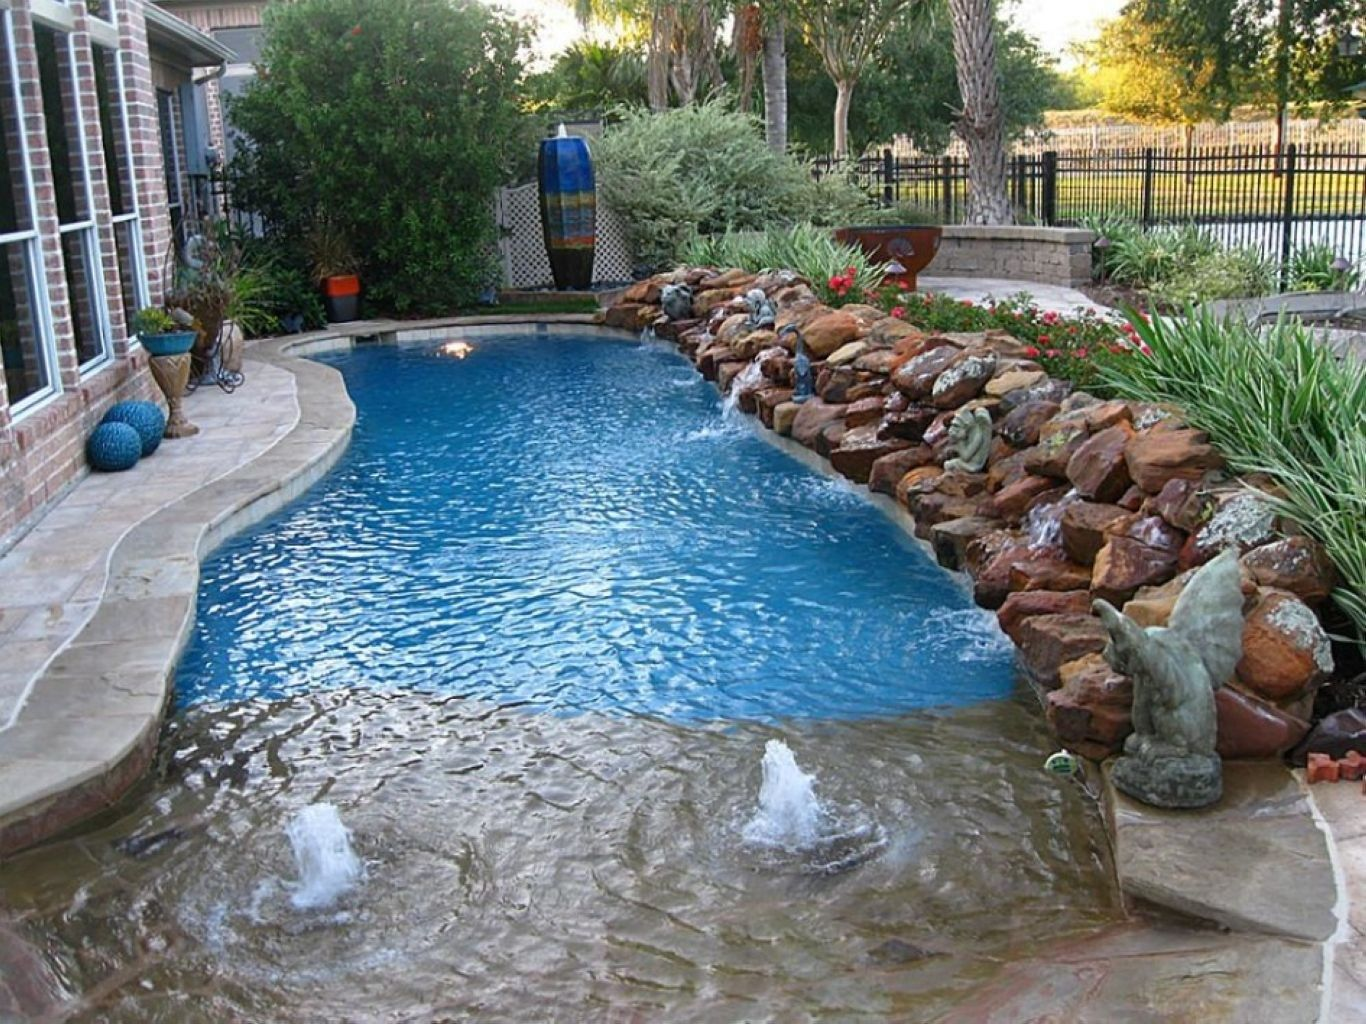 Best Small Backyards With Inground Pools 52 ...